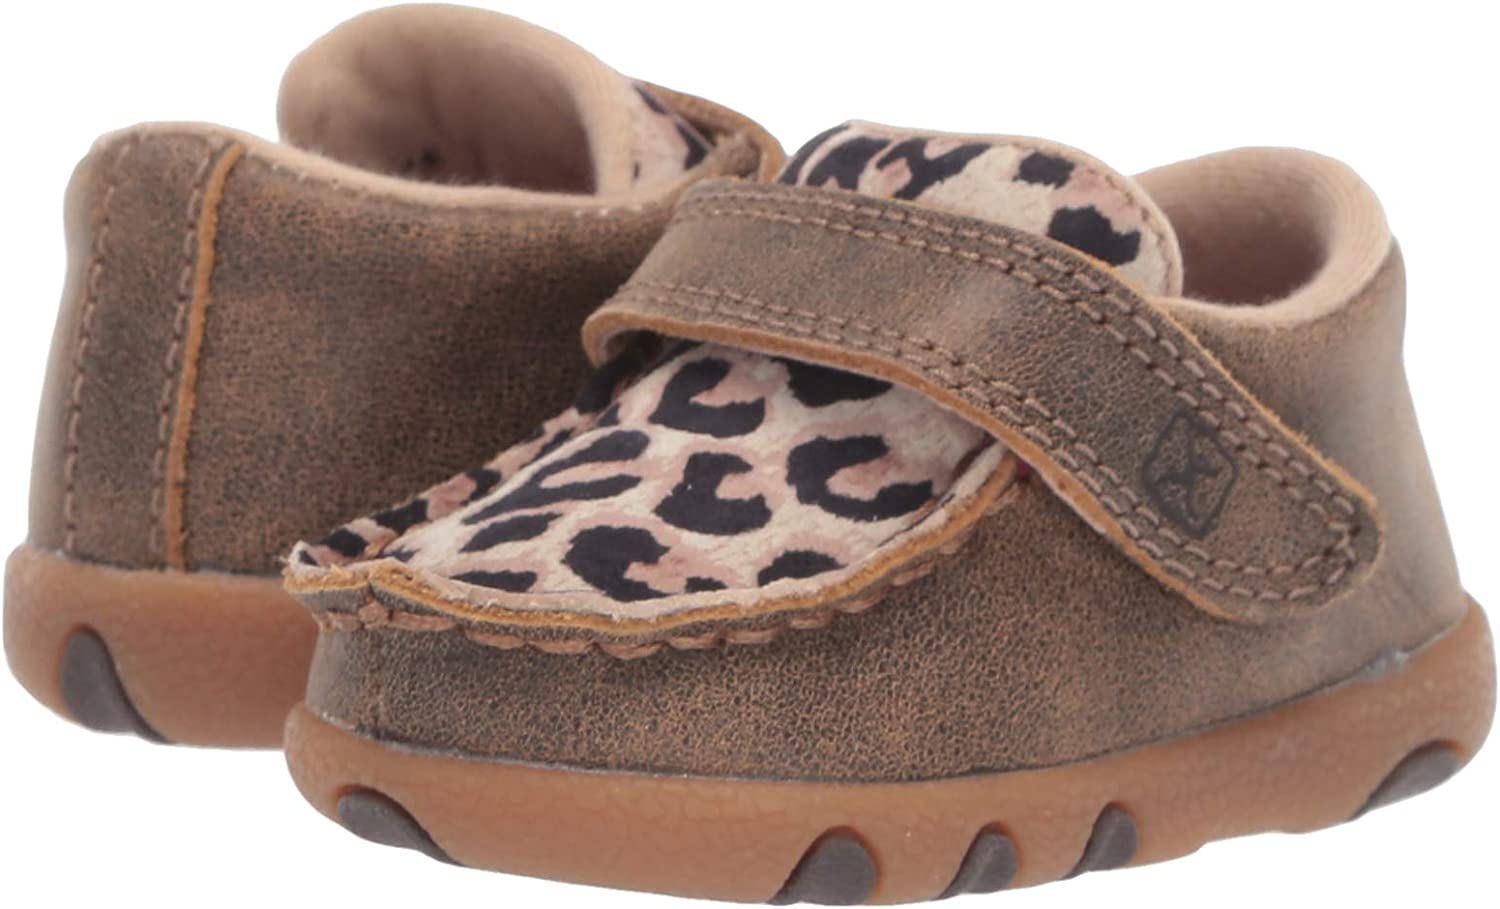 6 Medium Bomber//Multi TWISTED X Kids Driving Handcrafted Leather Casual Moccasins